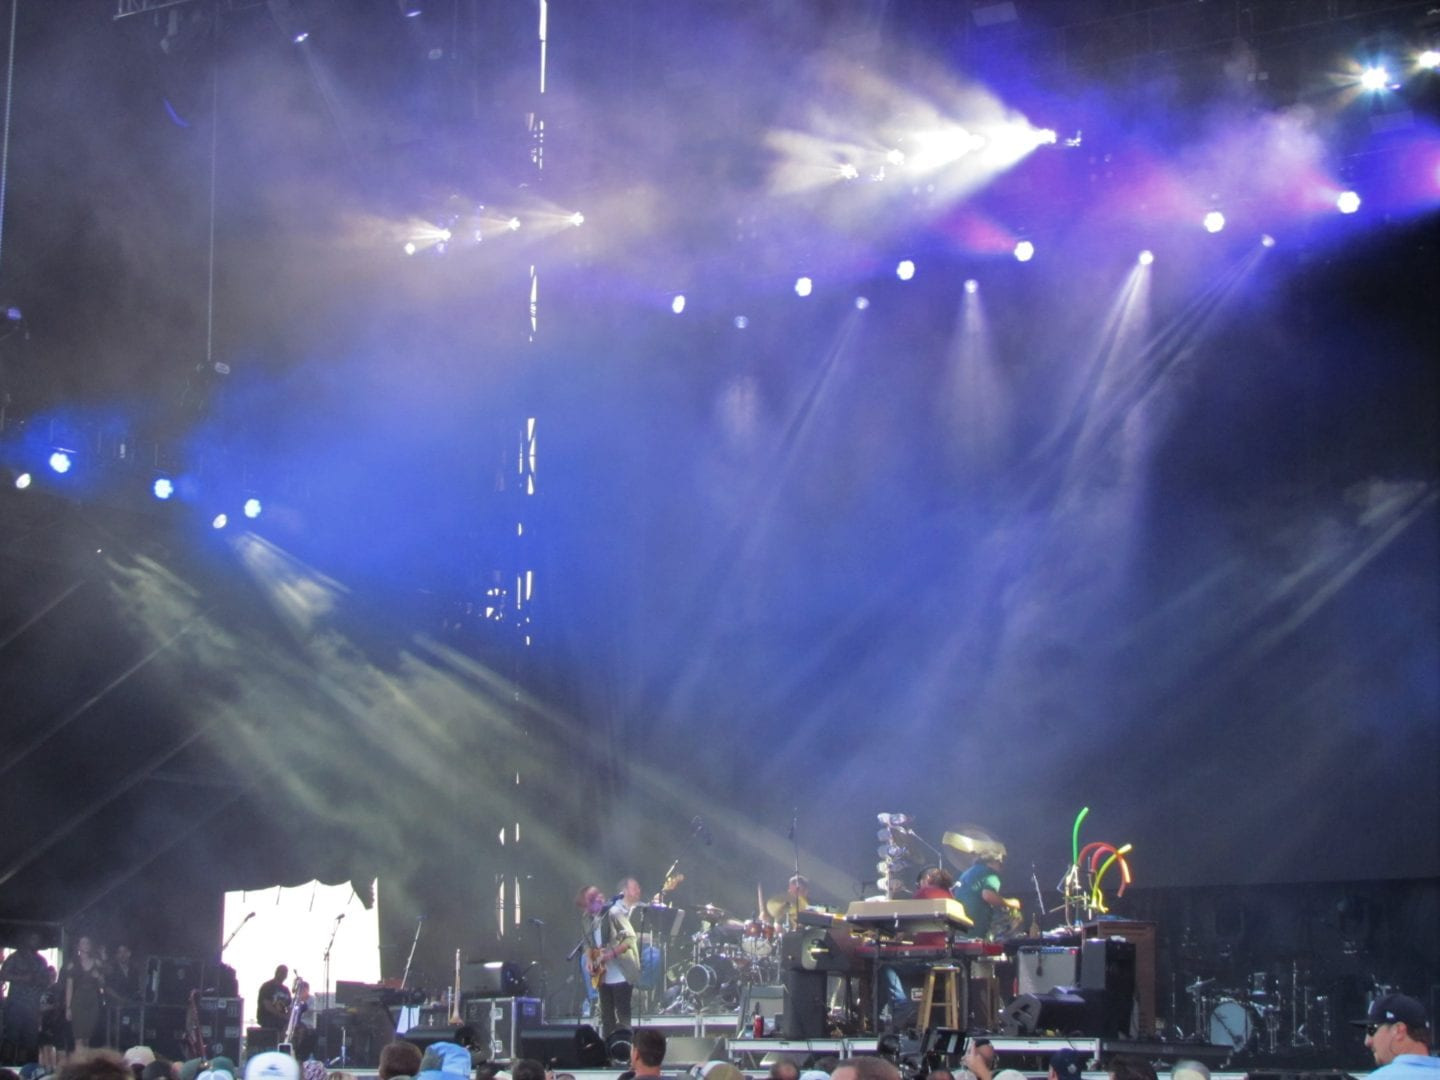 Trey Anastasio performing on stage with his band